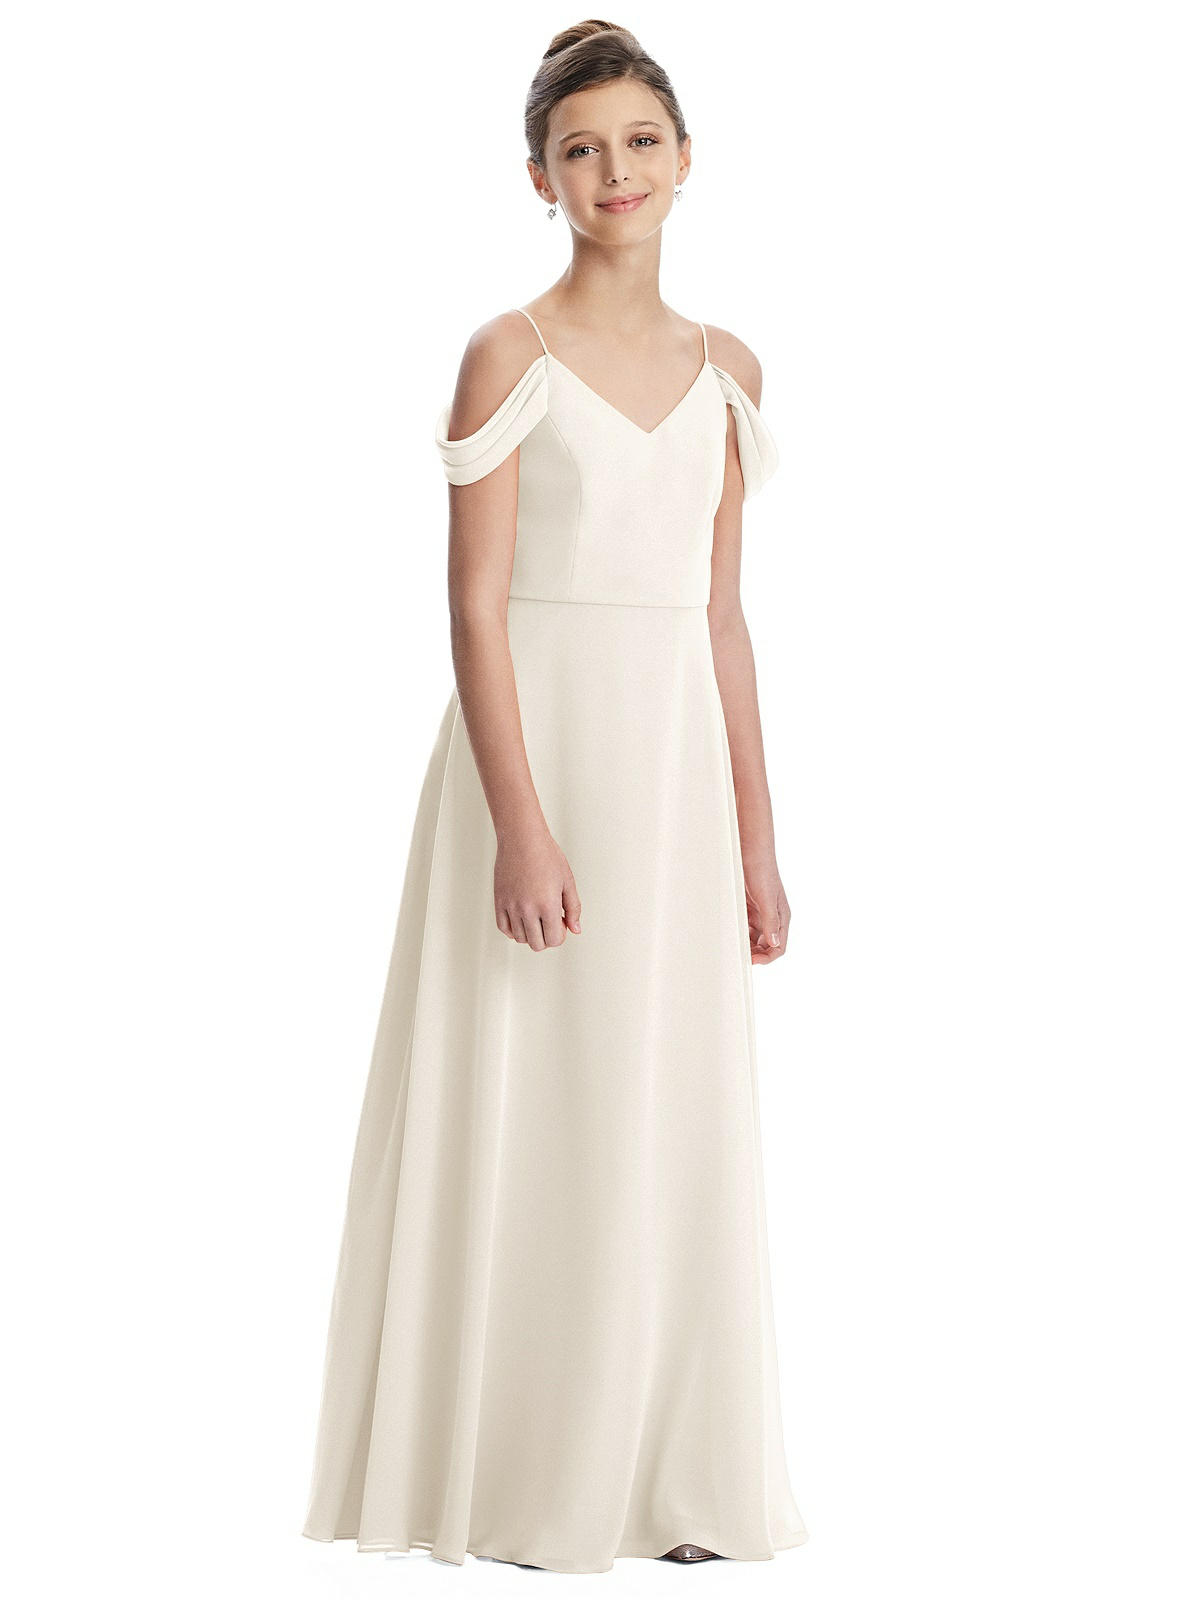 Ivory Off Shoulder Chiffon Junior Bridesmaids Dress